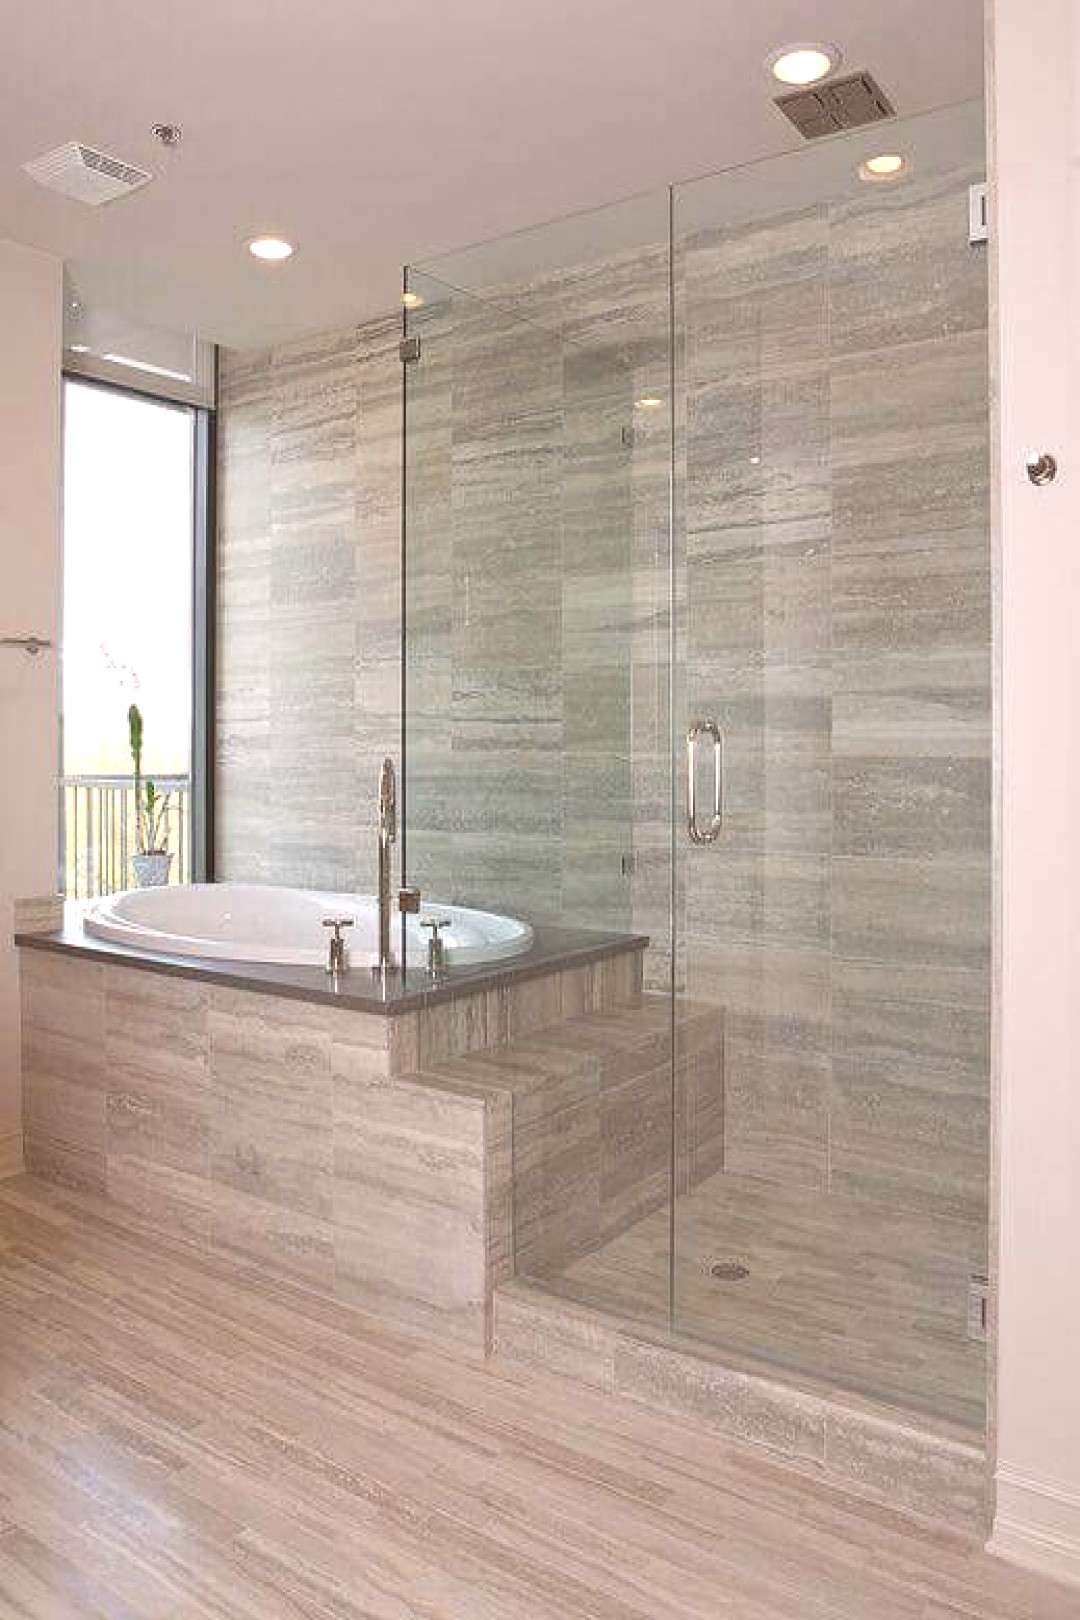 Contemporary bathrooms are all about the clean lines, fresh look and a dash of a luxury look. For m